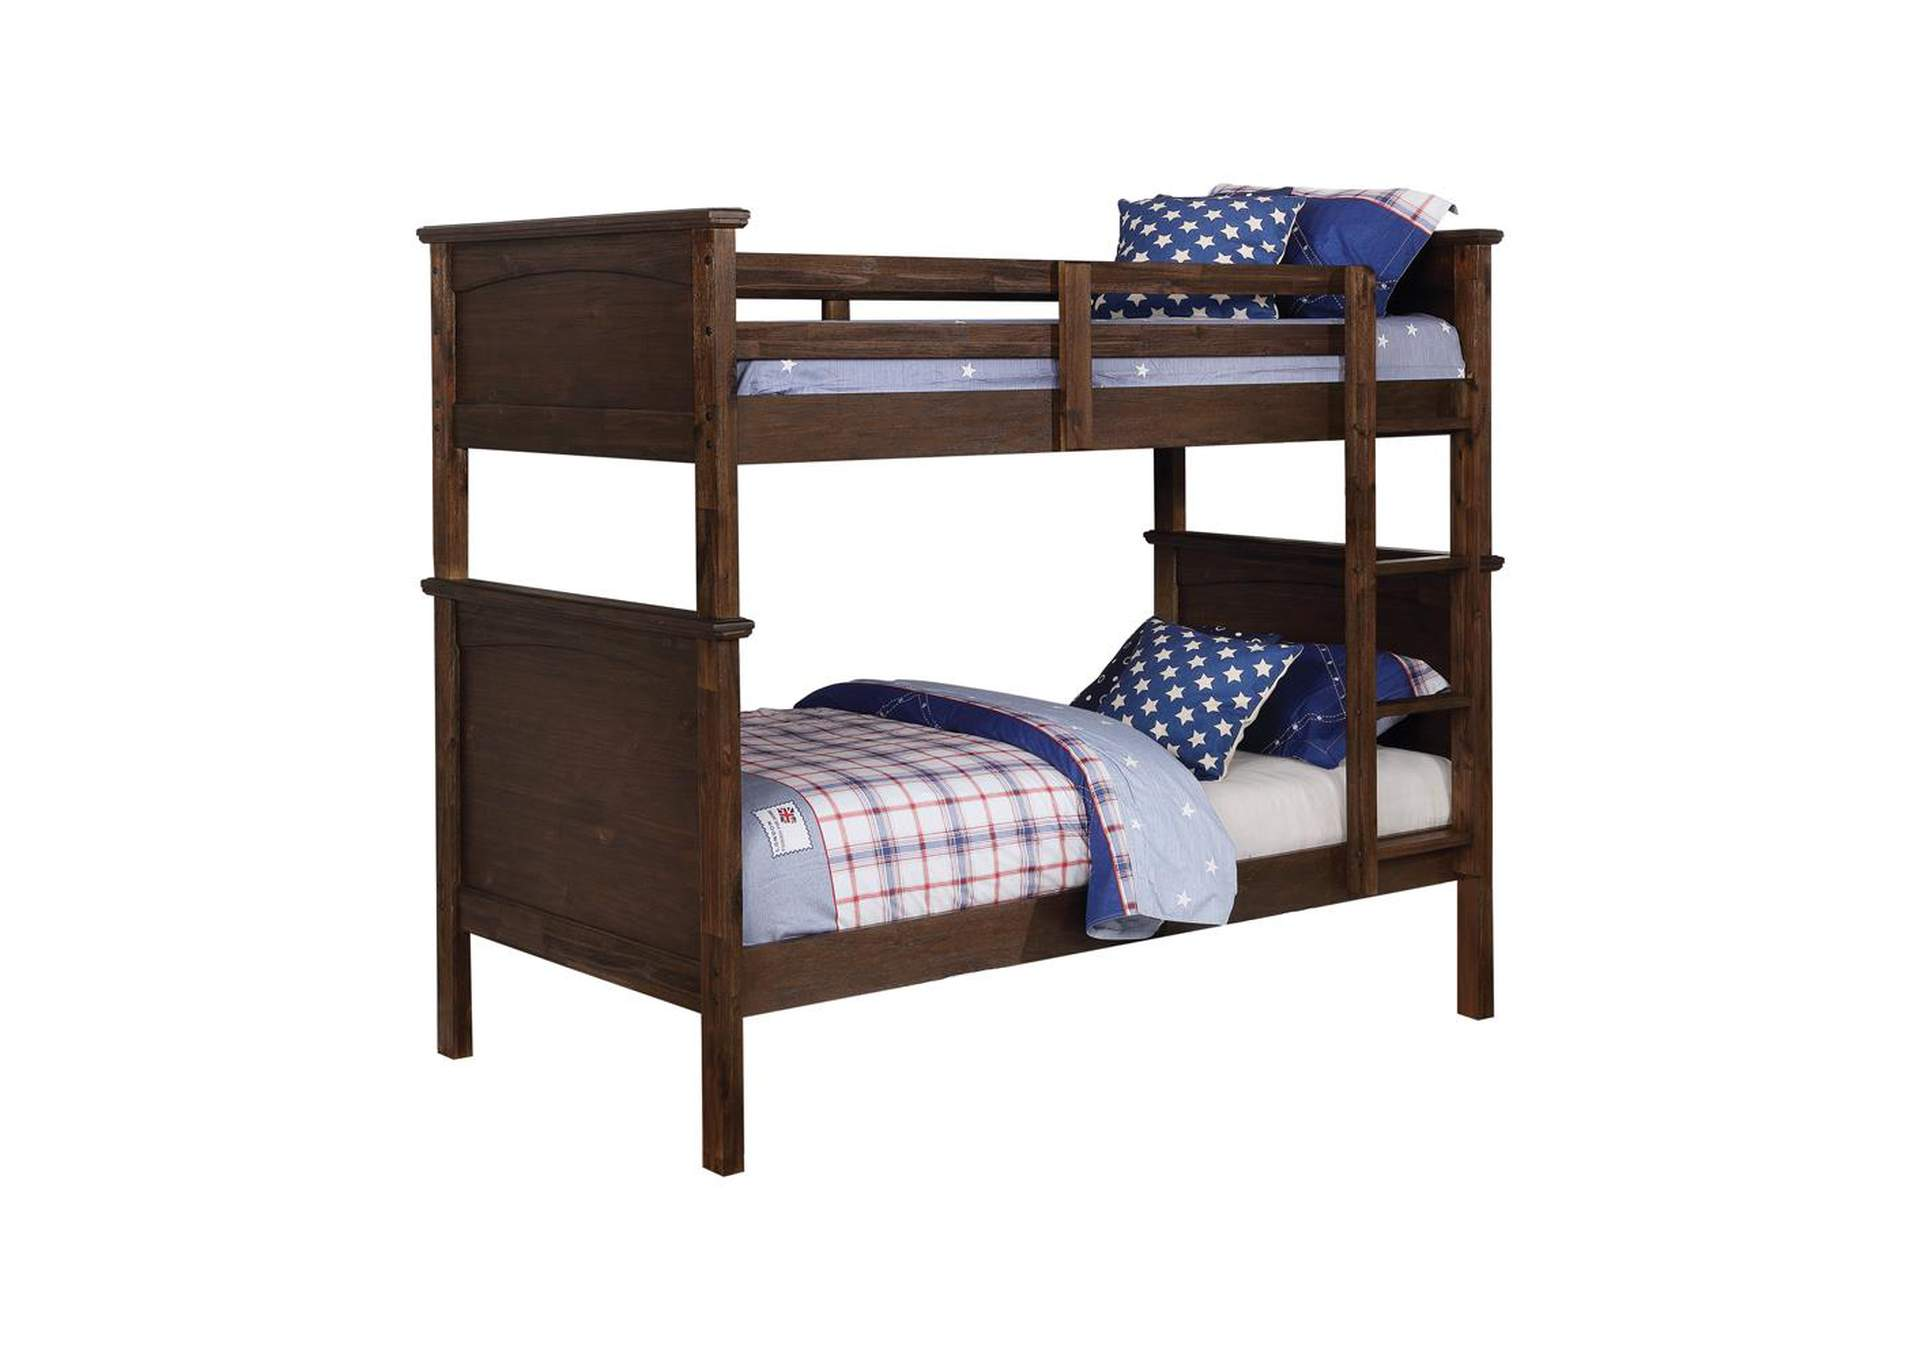 English Walnut Kinsley Rustic Country Brown Twin-over-Twin Bunk Bed,Coaster Furniture